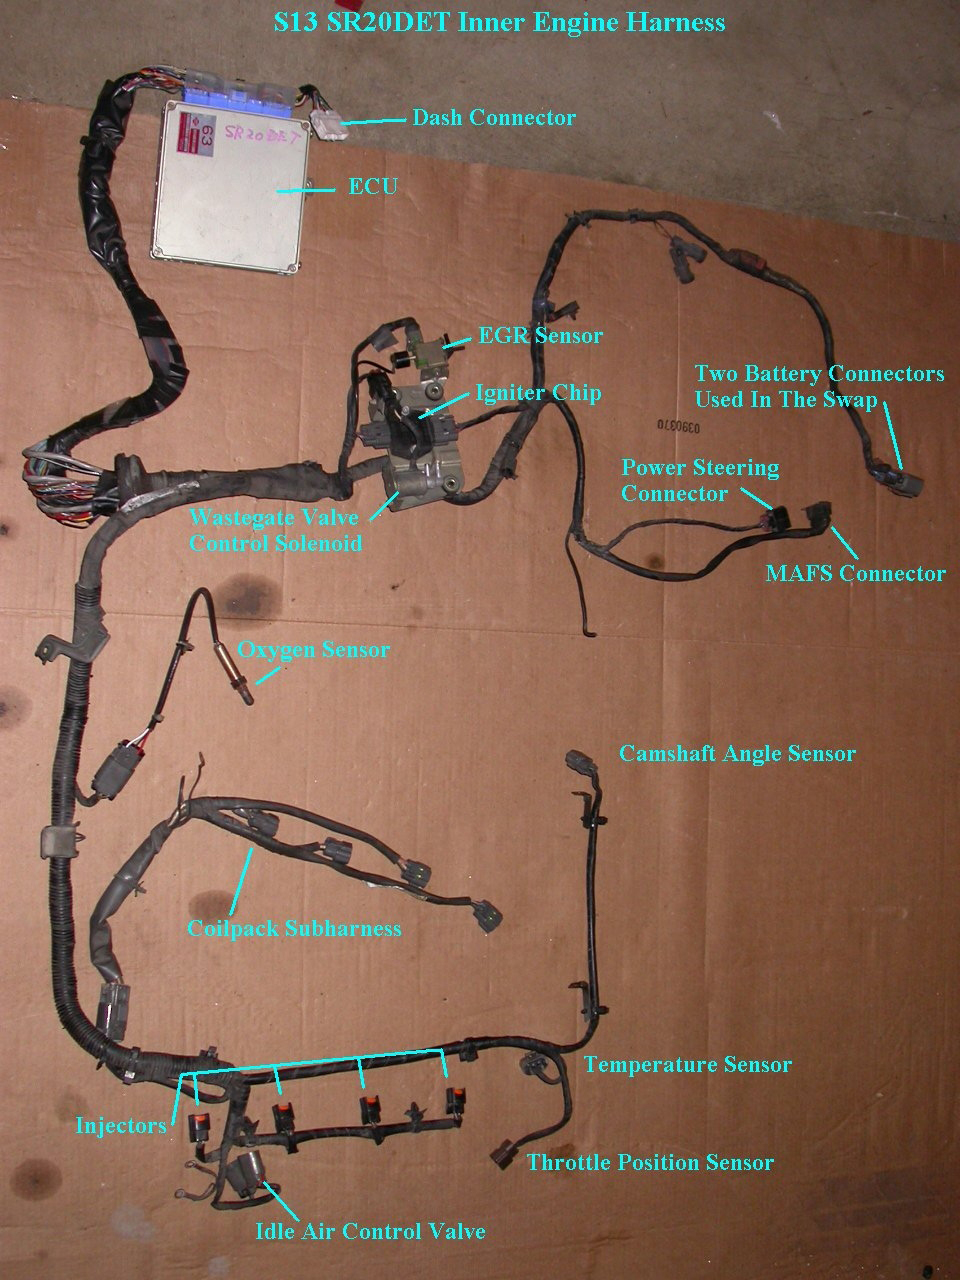 s13 wiring harness diagram c3 corvette www toyskids co very useful sr20det guide sr20 ka24de relocation